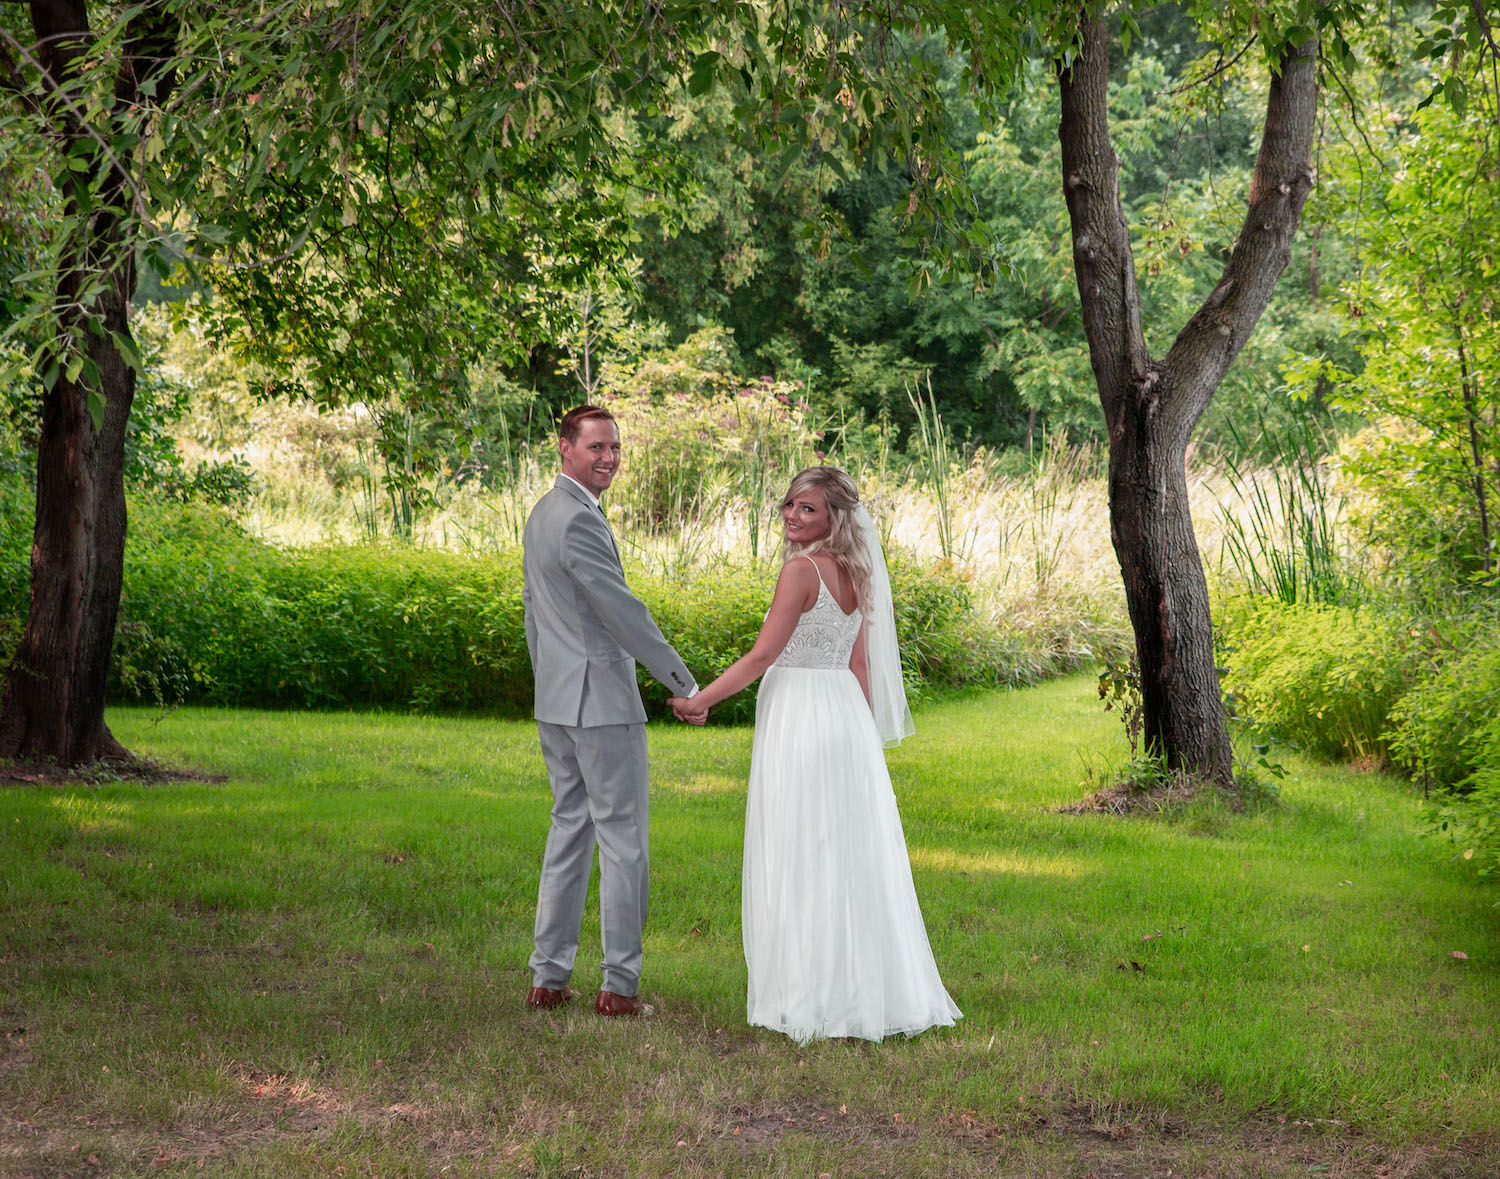 Cindyrellas Garden outdoor wedding ceremony by a private lake with wooded backdrops, elegant bride